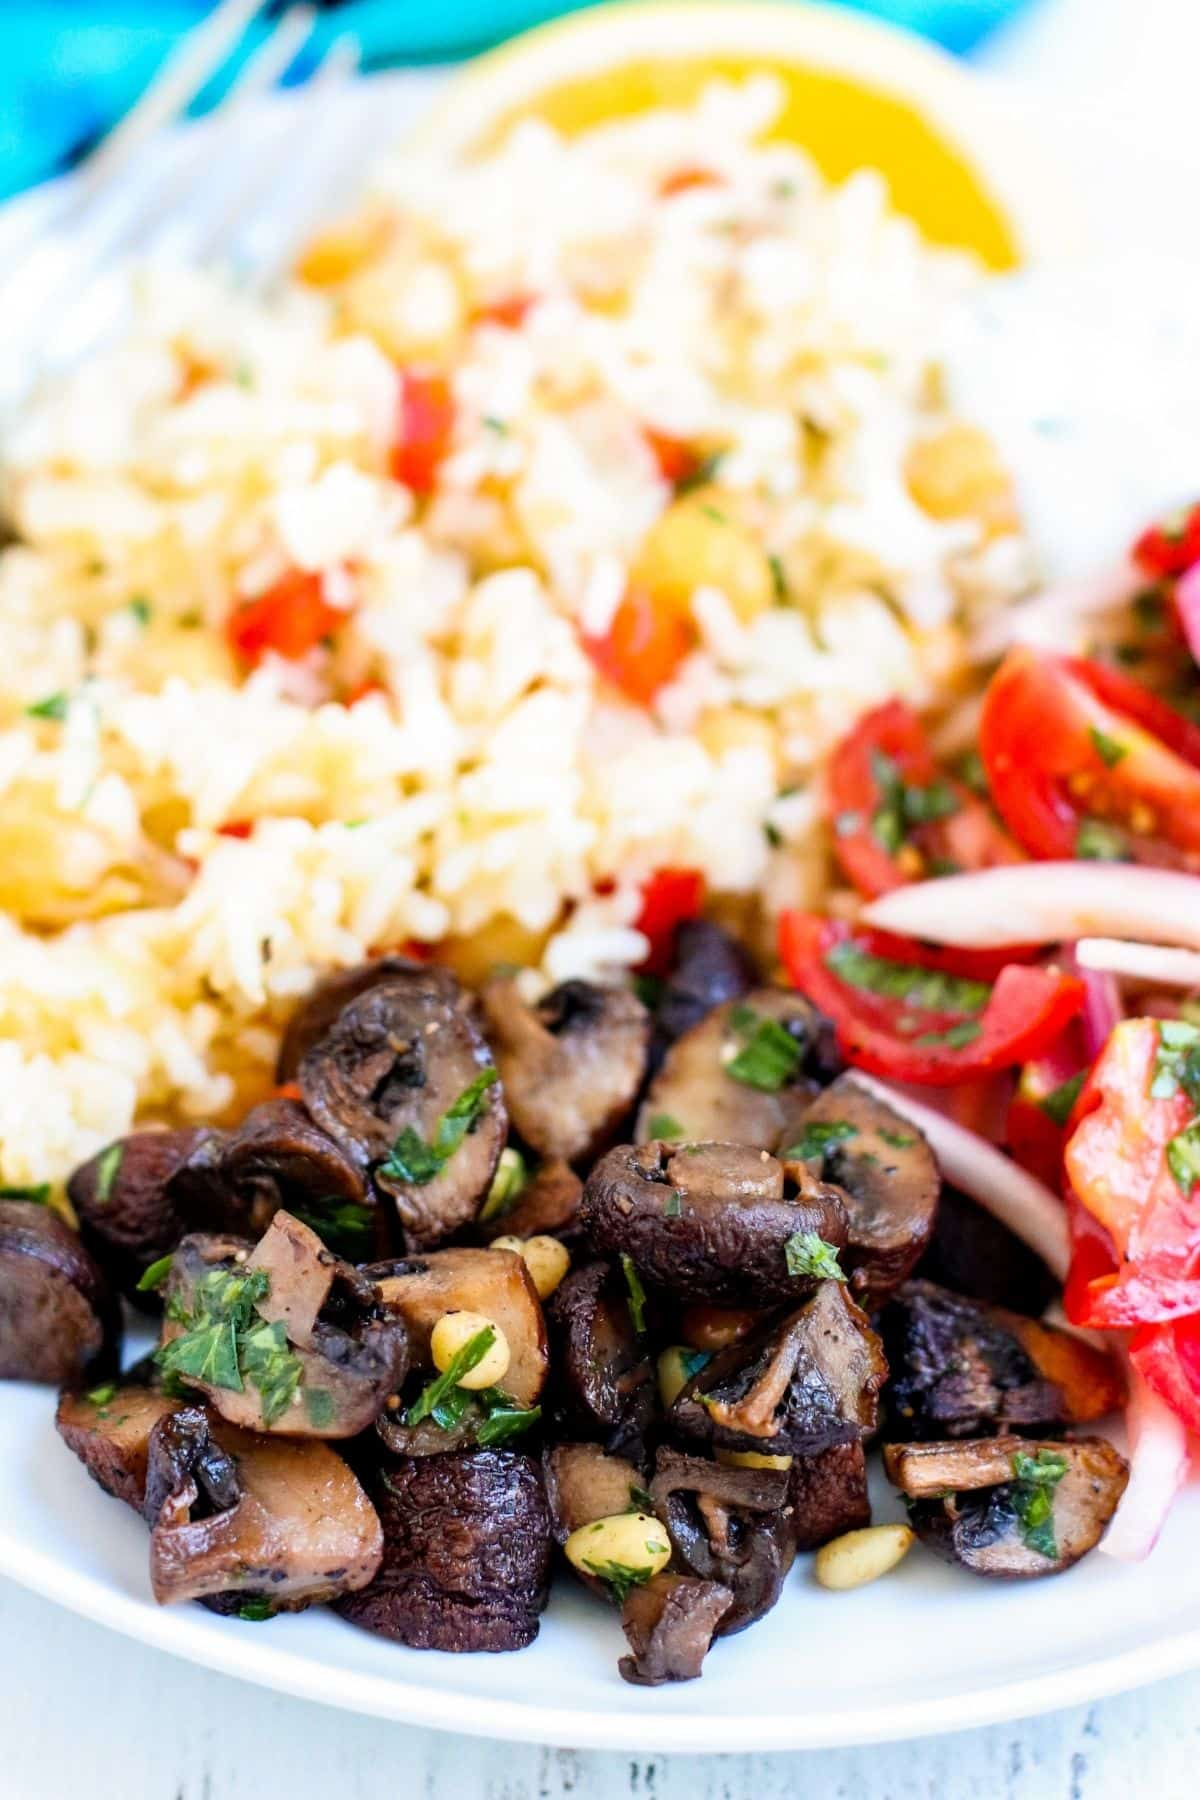 Dinner plate of roasted mushrooms, chickpea rice pilaf, yogurt sauce, and tomatoes and red onions